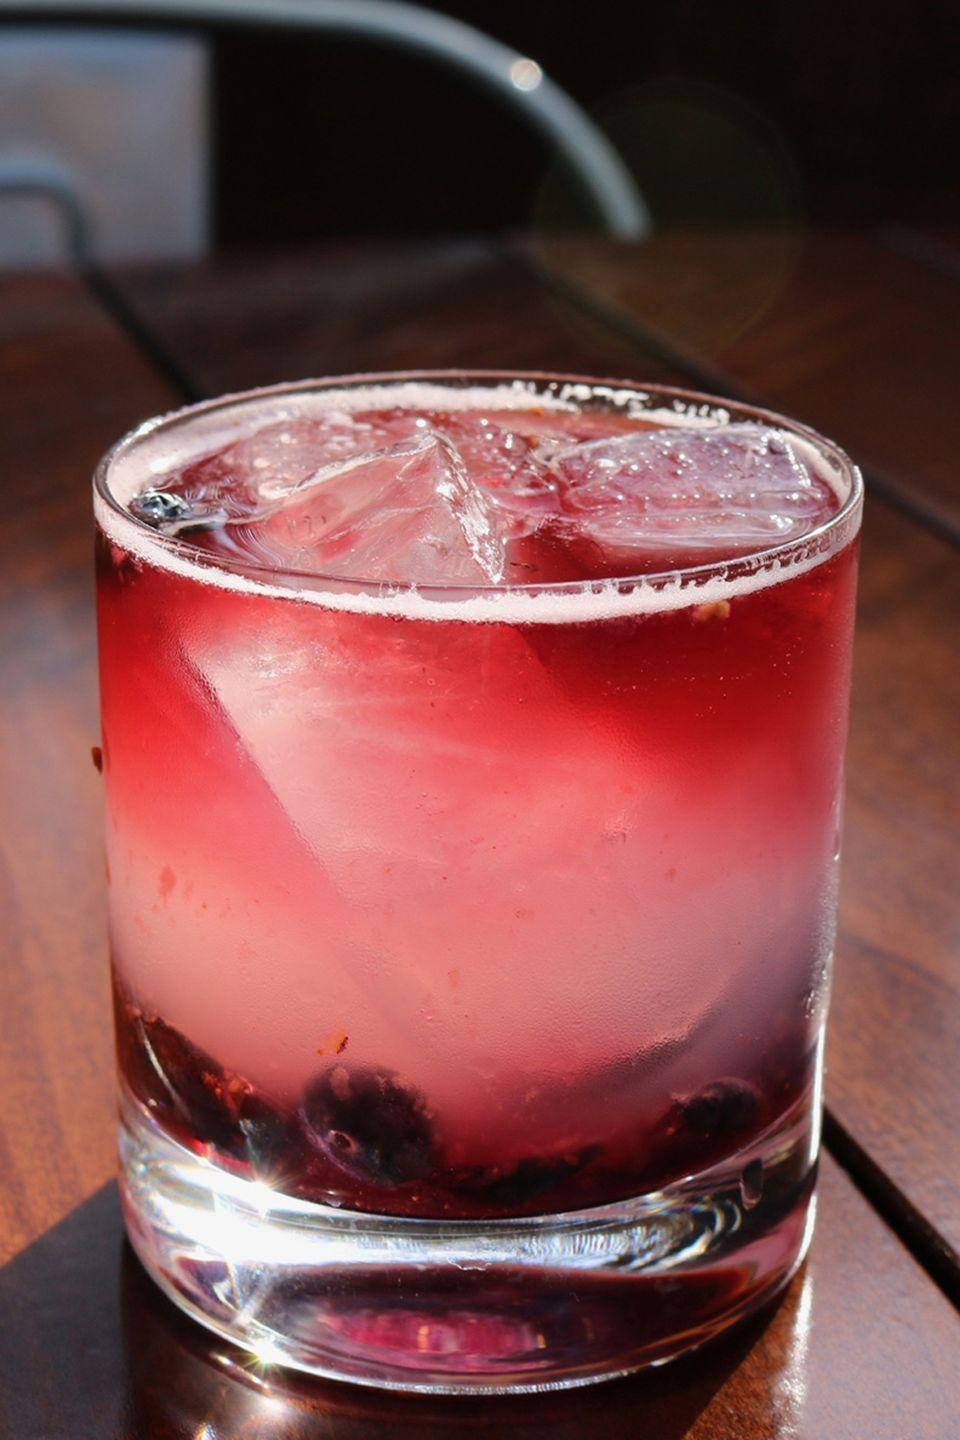 """<p><strong>Ingredients</strong></p><p>8-10 blueberries<br>2 oz Long Island Vodka<br>1 oz fresh lemon juice<br>1 oz simple syrup<br>1-2 oz Oregon Pinot Noir</p><p><strong>Instructions</strong></p><p>Muddle fresh blueberries at the bottom of a double old fashioned glass and top with ice. Add vodka, lemon, and simple syrup to a mixing glass and shake vigorously. Strain over ice and blueberries. Pour wine over a spoon to create a red wine """"float.""""</p><p><em>From <a href=""""https://www.kingsleynyc.com/"""" rel=""""nofollow noopener"""" target=""""_blank"""" data-ylk=""""slk:Kingsley"""" class=""""link rapid-noclick-resp"""">Kingsley</a> in New York City</em></p><p><strong>More</strong>: <a href=""""https://www.townandcountrymag.com/leisure/drinks/g19576401/fruity-alcoholic-drinks/"""" rel=""""nofollow noopener"""" target=""""_blank"""" data-ylk=""""slk:Fruity Cocktails That Are Mouth-Wateringly Delicious"""" class=""""link rapid-noclick-resp"""">Fruity Cocktails That Are Mouth-Wateringly Delicious</a></p>"""